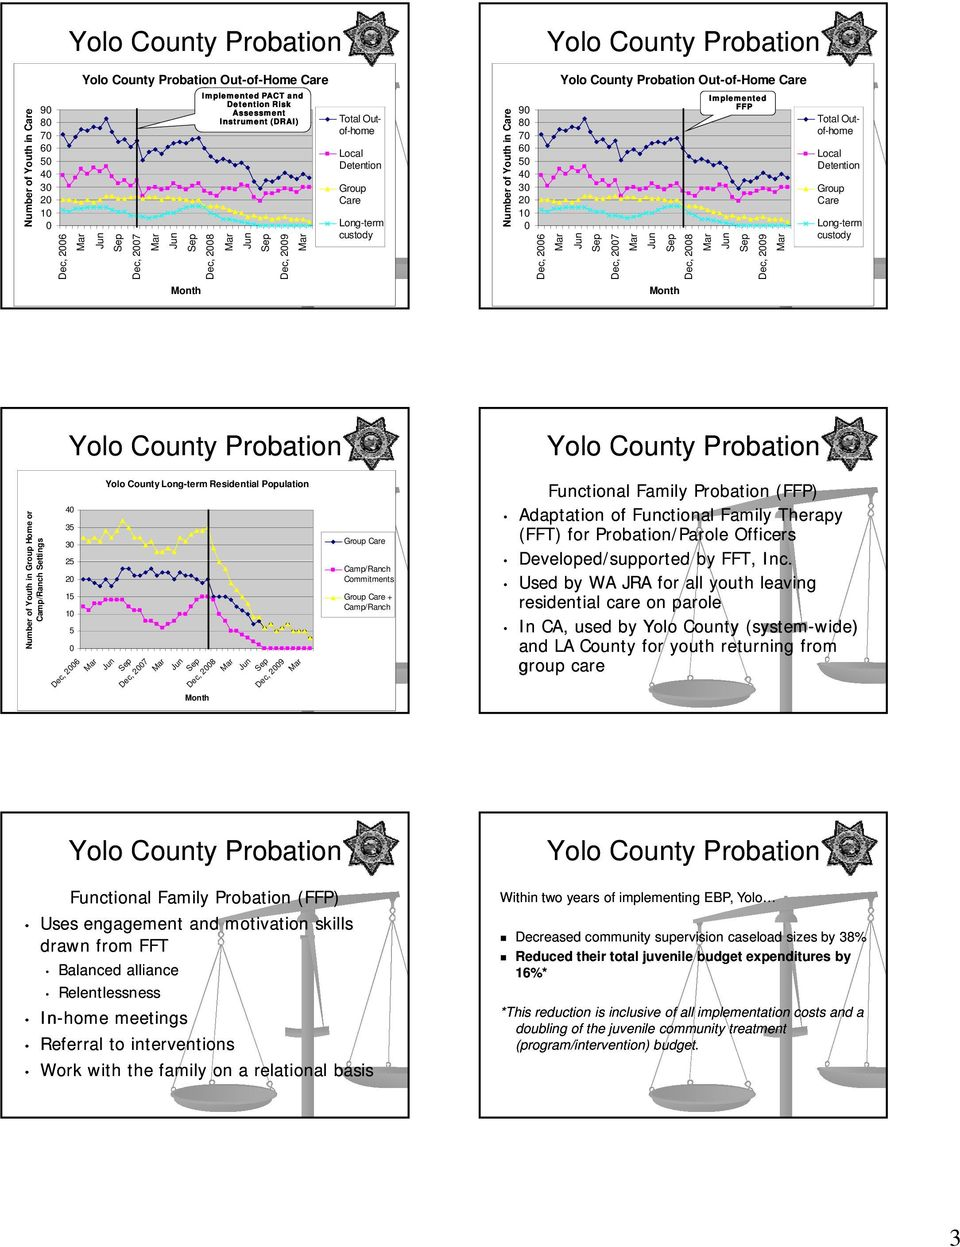 Yolo County Probation Mar Yolo County Probation Out-of-Home Care Jun Sep Dec, 2007 Mar Jun Sep Month Dec, 2008 Mar Implemented FFP Jun Sep Dec, 2009 Mar Total Outof-home Local Detention Group Care